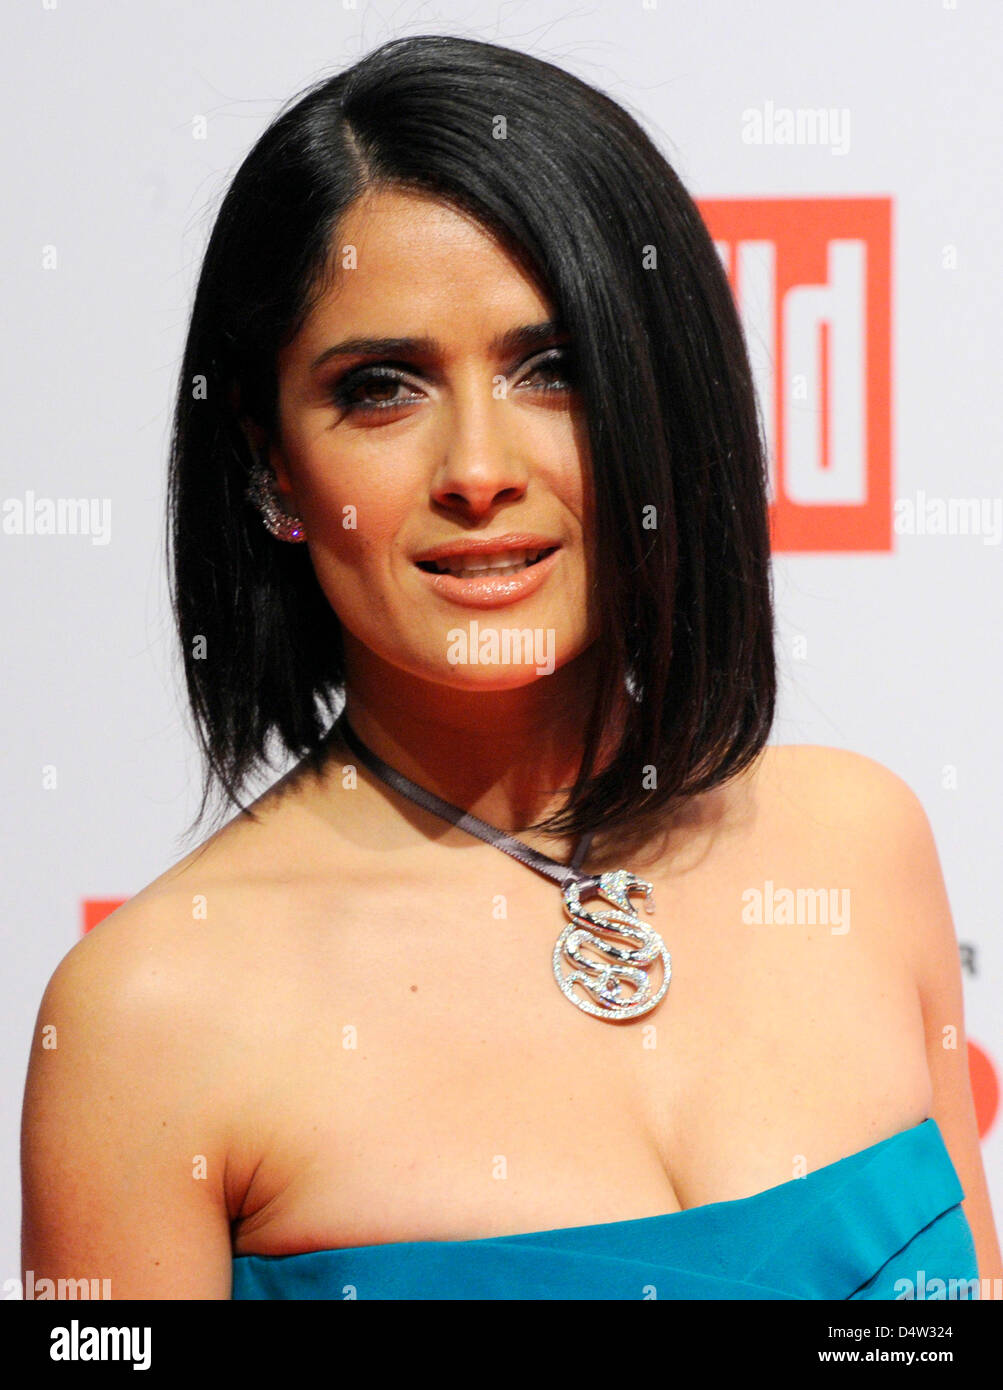 Mexican actress Salma Hayek at the charity gala 'A Heart for Children' ('Ein Herz für Kinder') in Berlin, Germany, Stock Photo